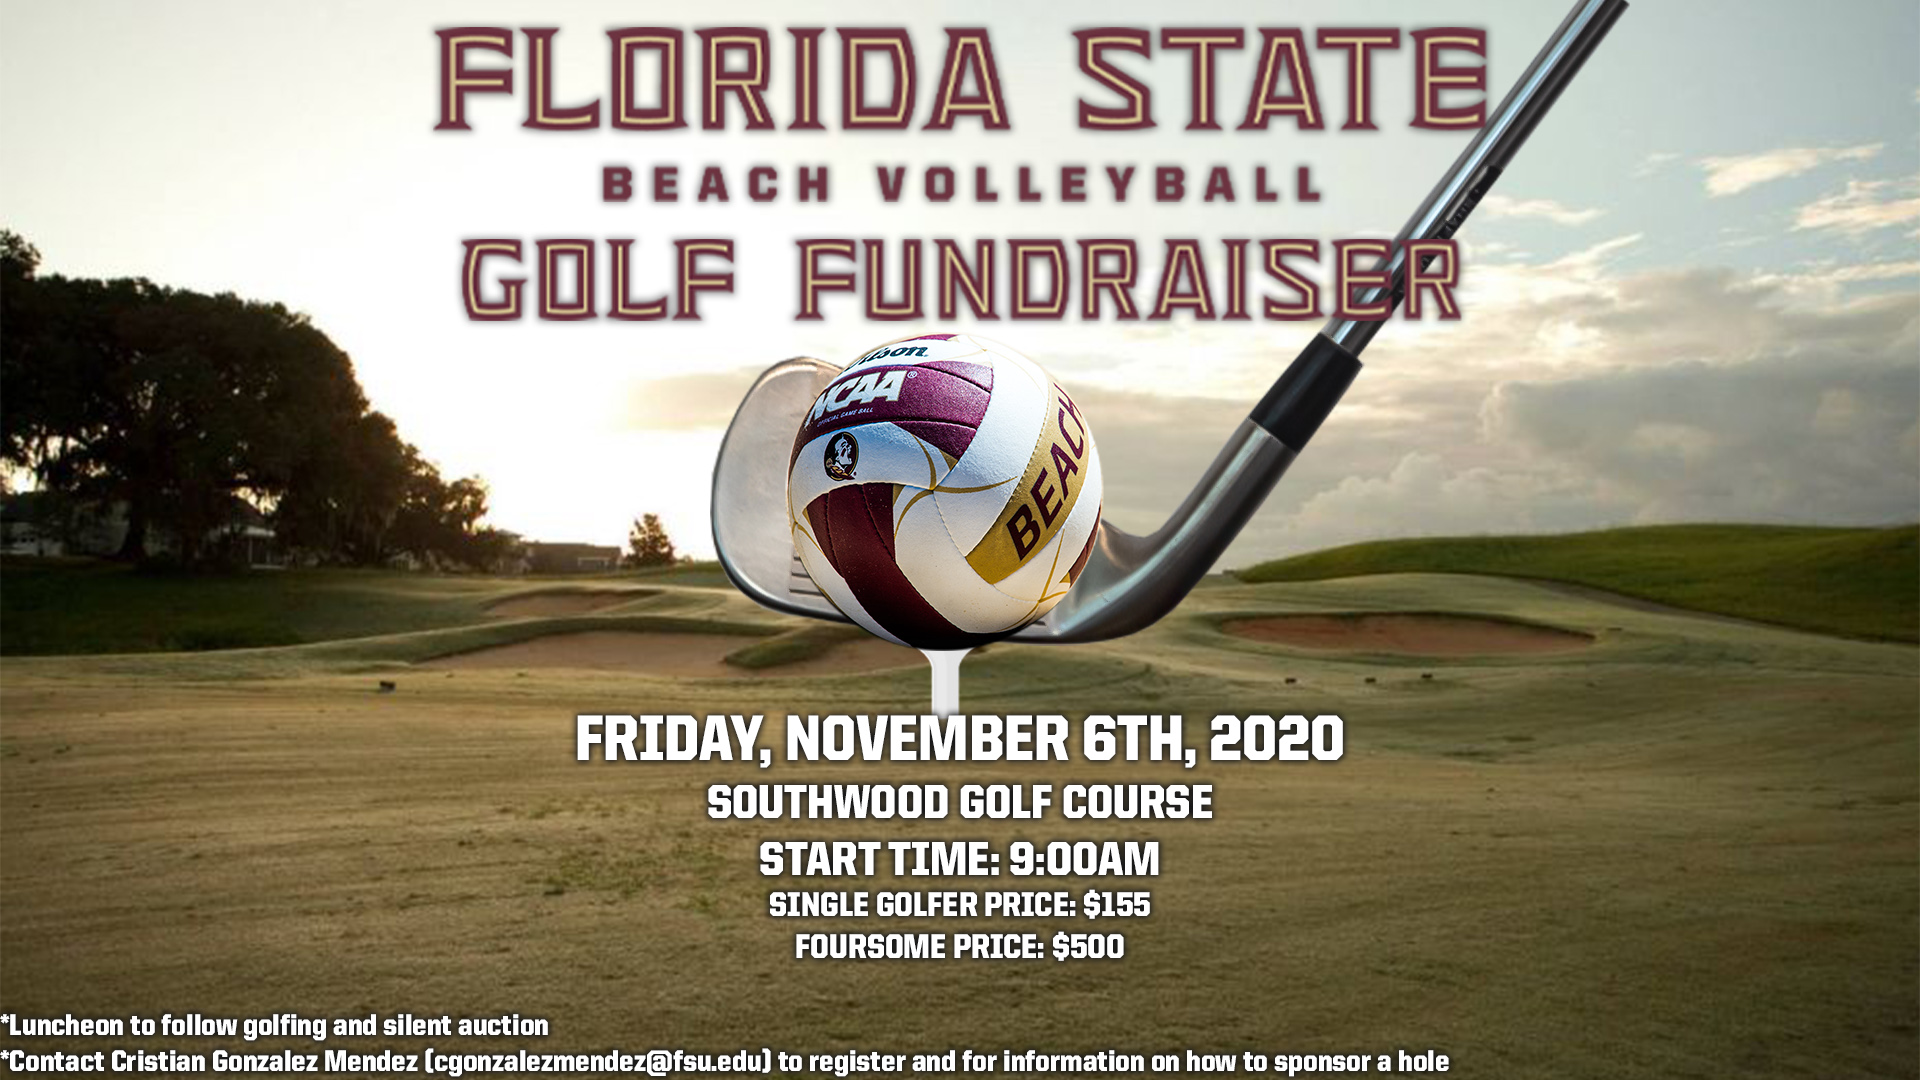 Beach Volleyball Golf Fundraiser